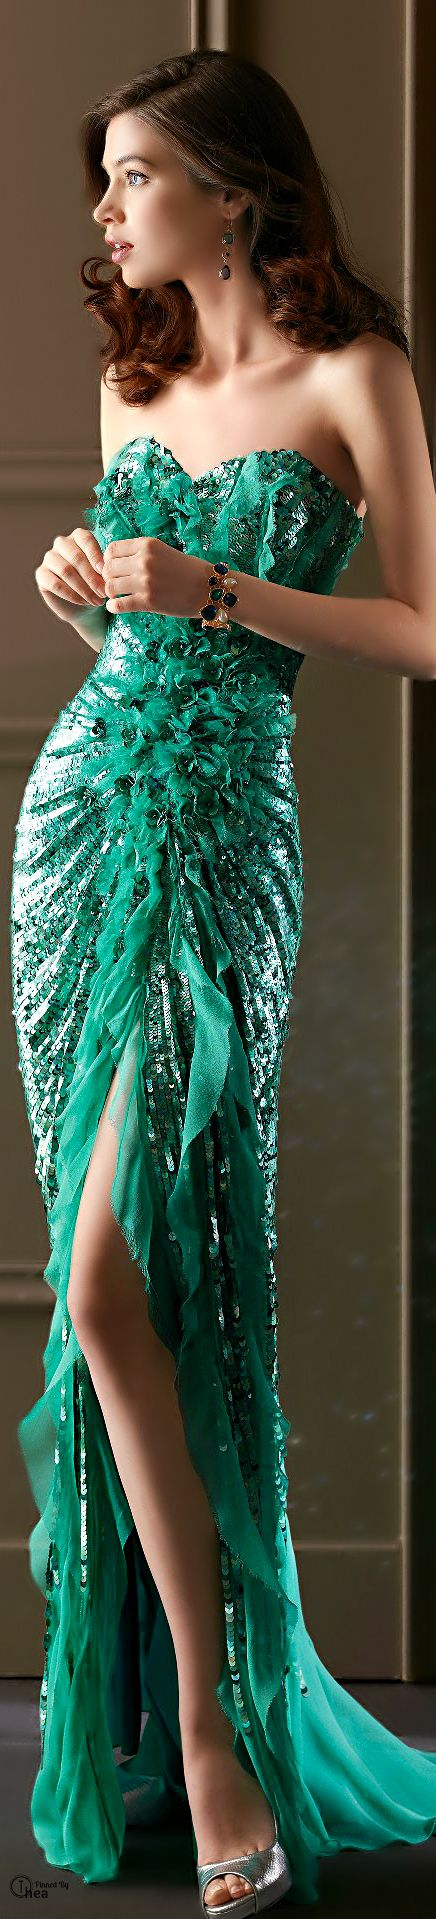 glamour gown in green